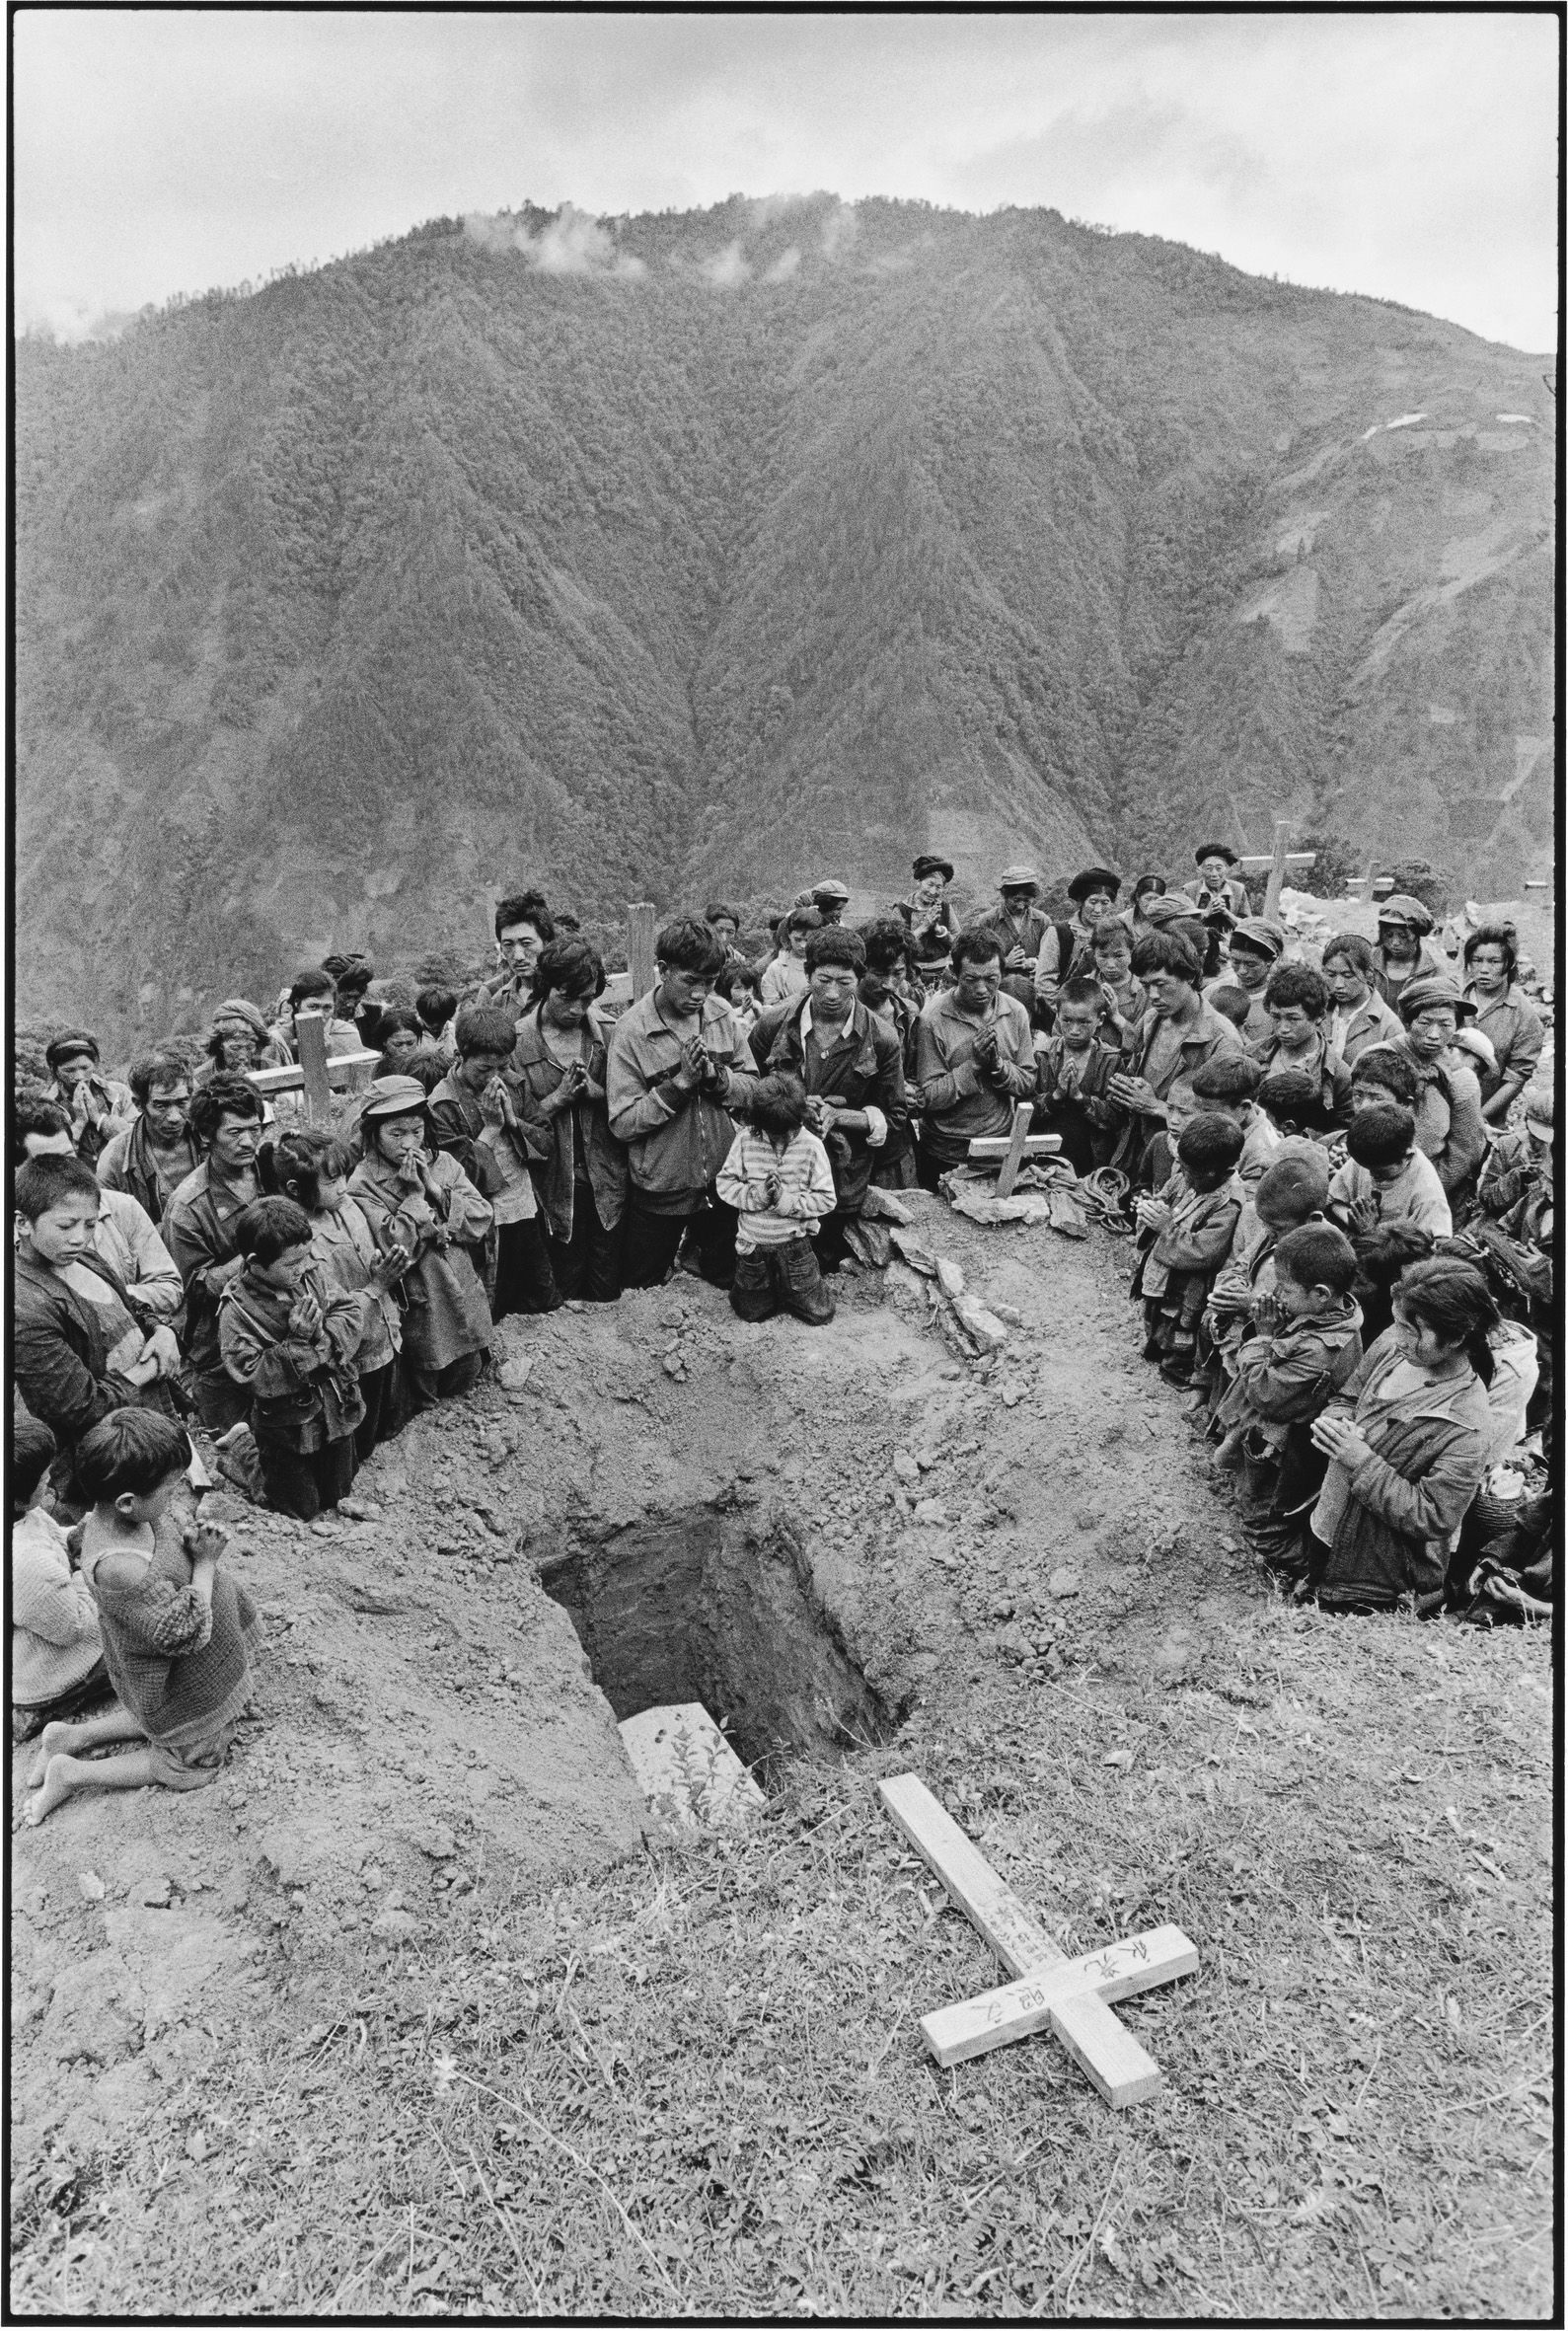 A Child's Funeral, Yunnan, China